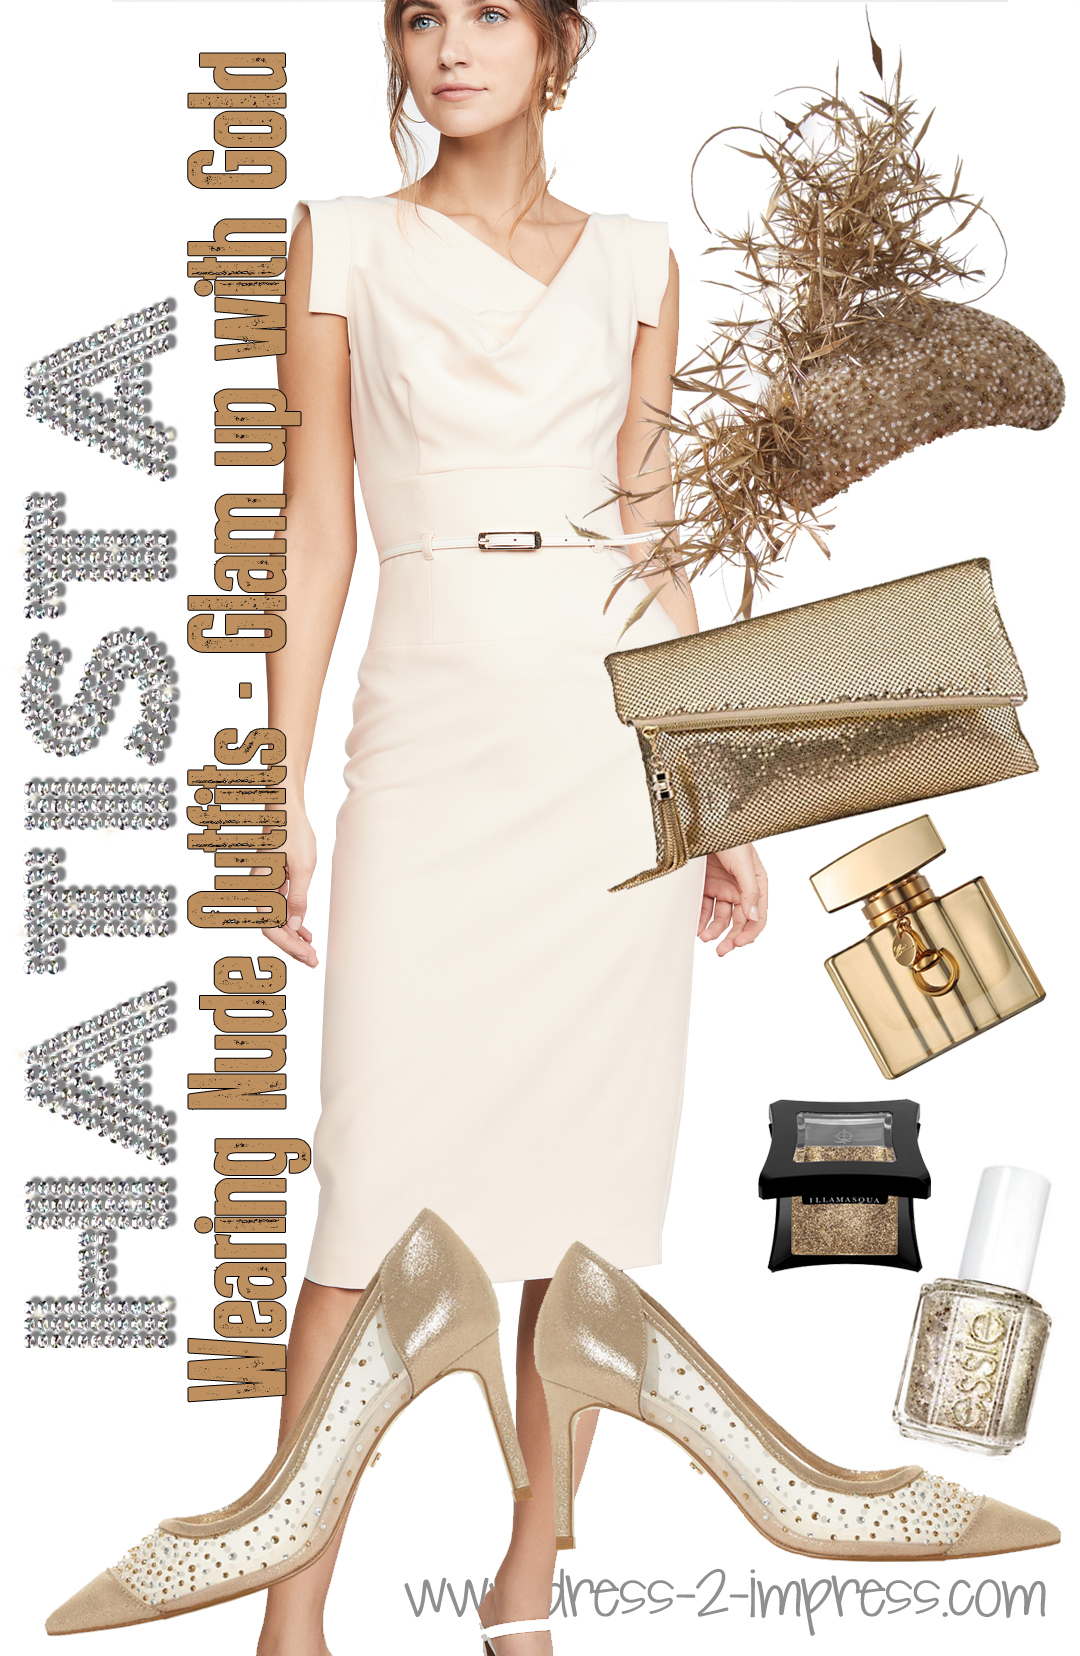 How to wear Metallics for daywear, What to wear with a Nude Dress. What to wear to Royal Ascot. Hervé Léger Marina Dress. Outfit ideas for Autumn Weddings, Melbourne Cup Outfits. Mother of the Bride Outfits ideas for Autumn Winter. What to wear to the Races. #kentuckyderby #motherofthebride #ascothats #derbyhats